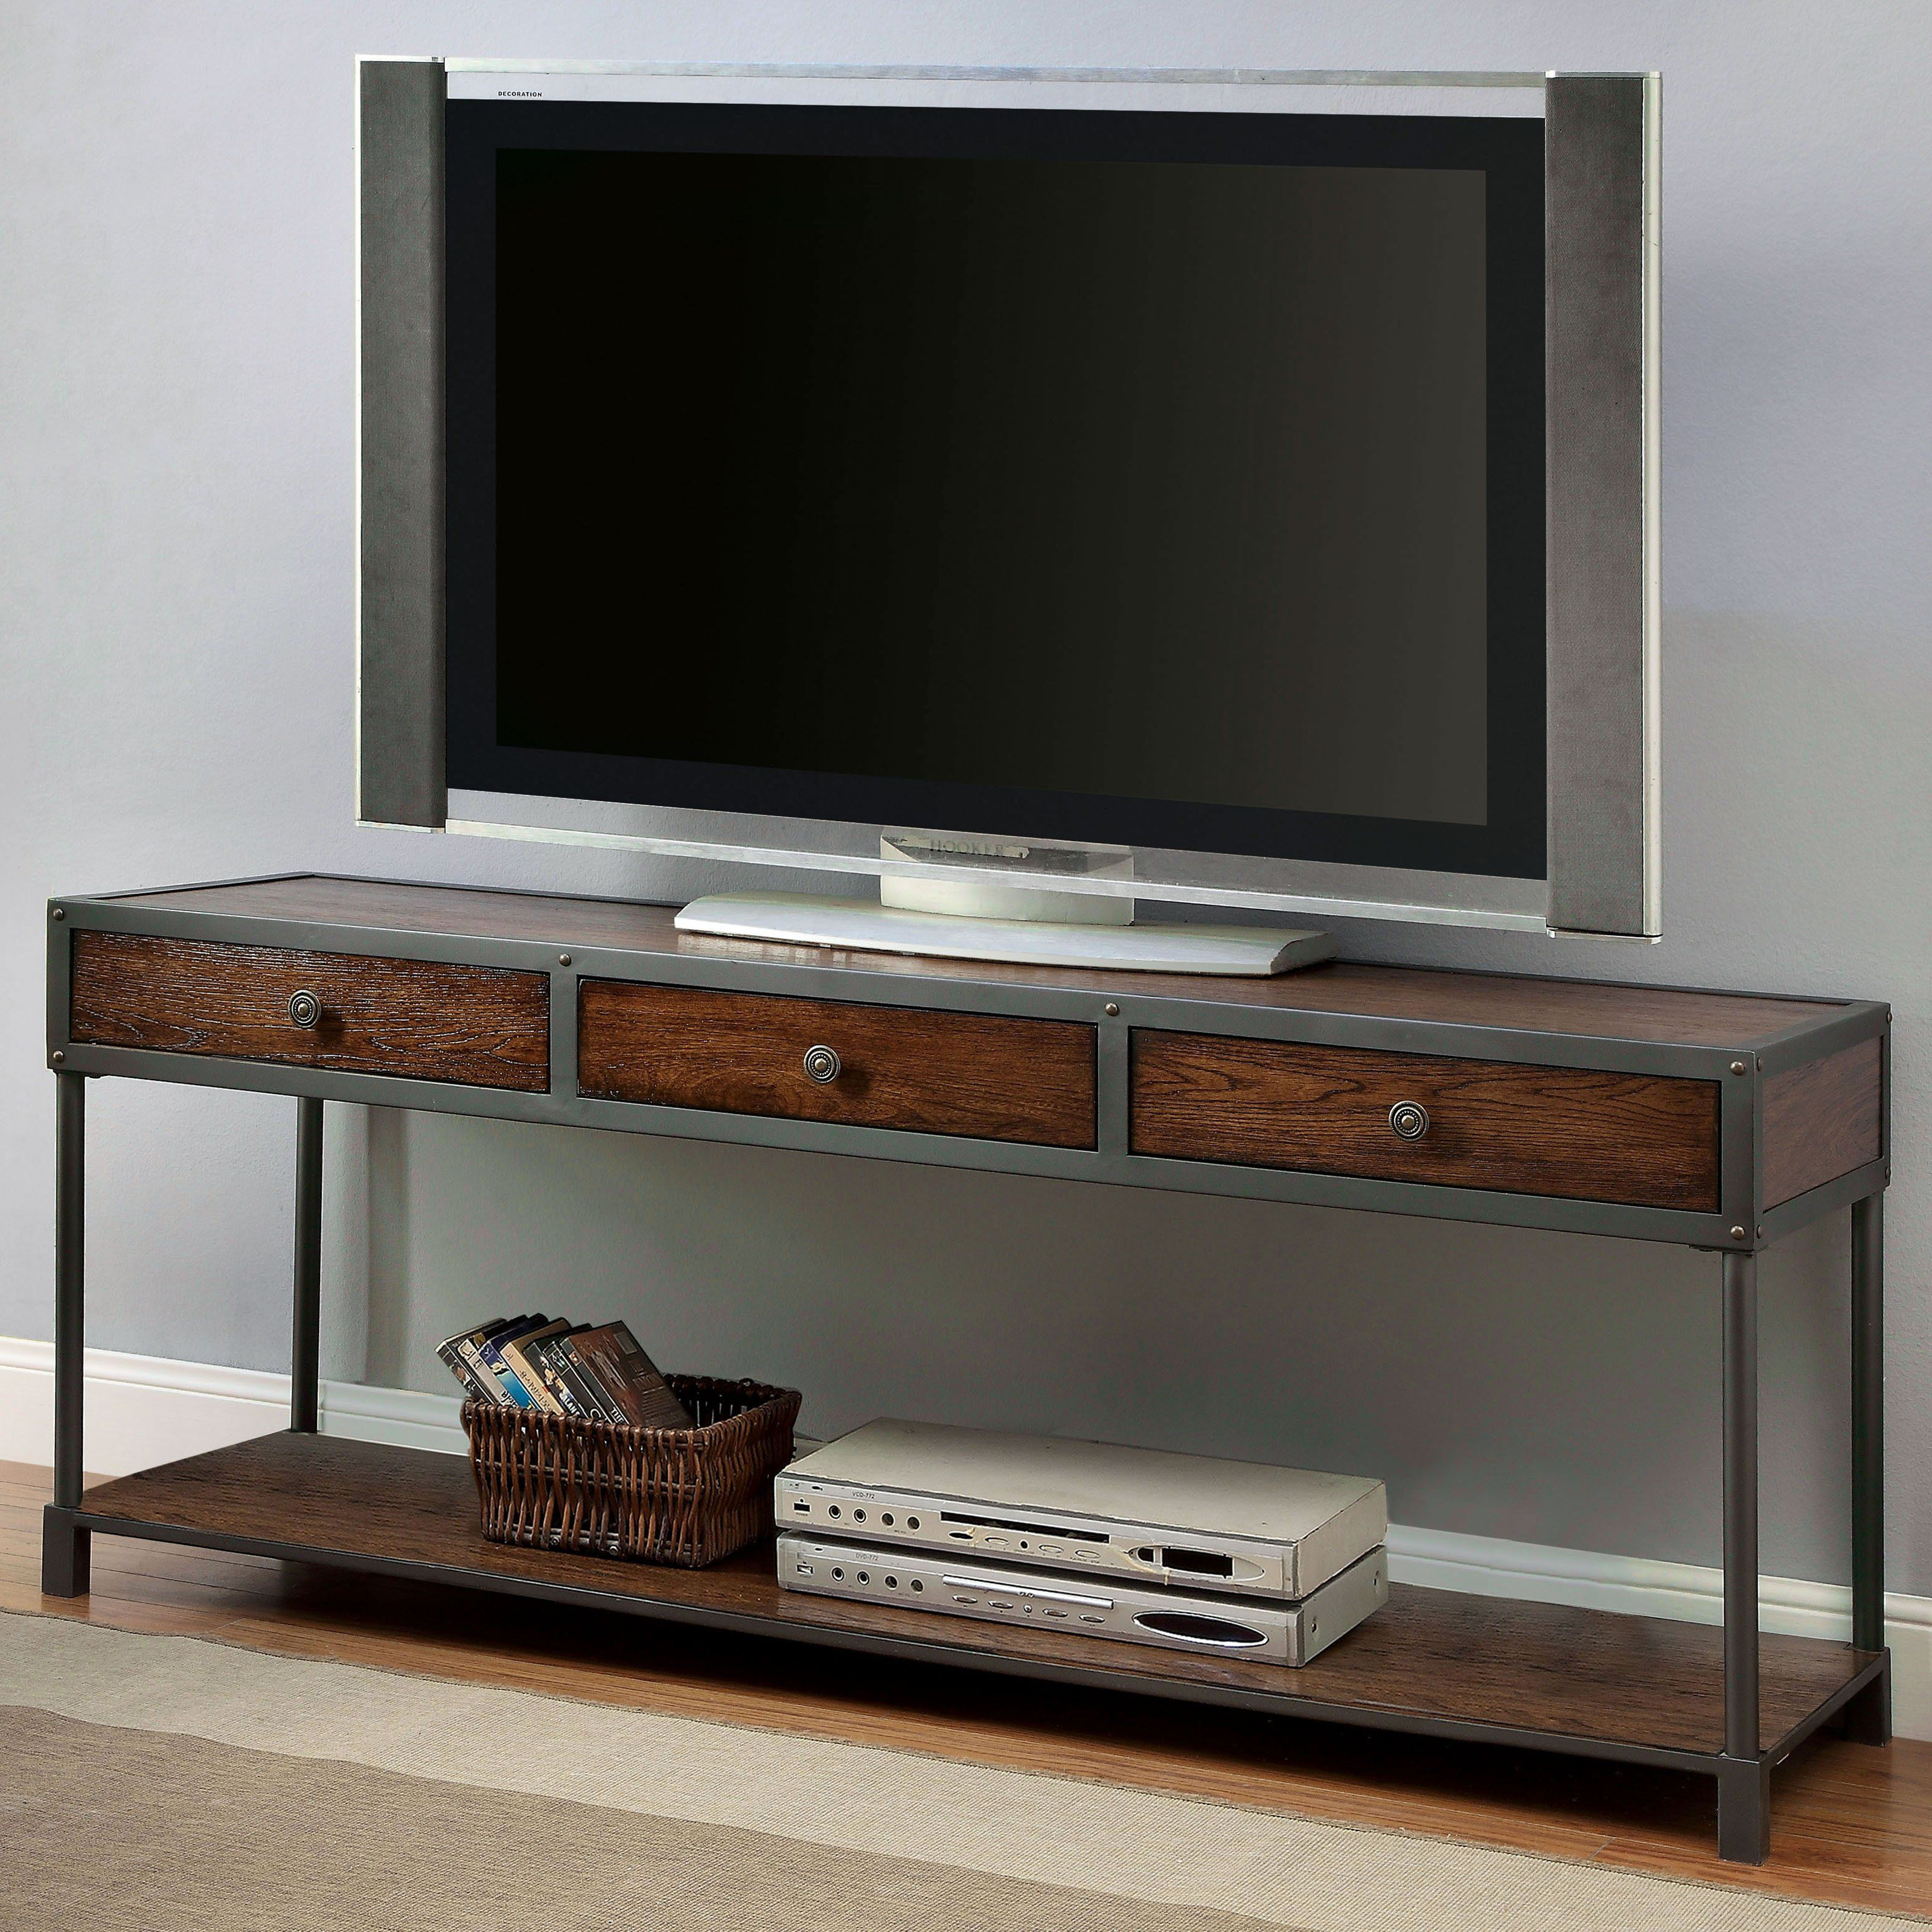 Furniture Of America Holton Transitional 60 In Tv Console From